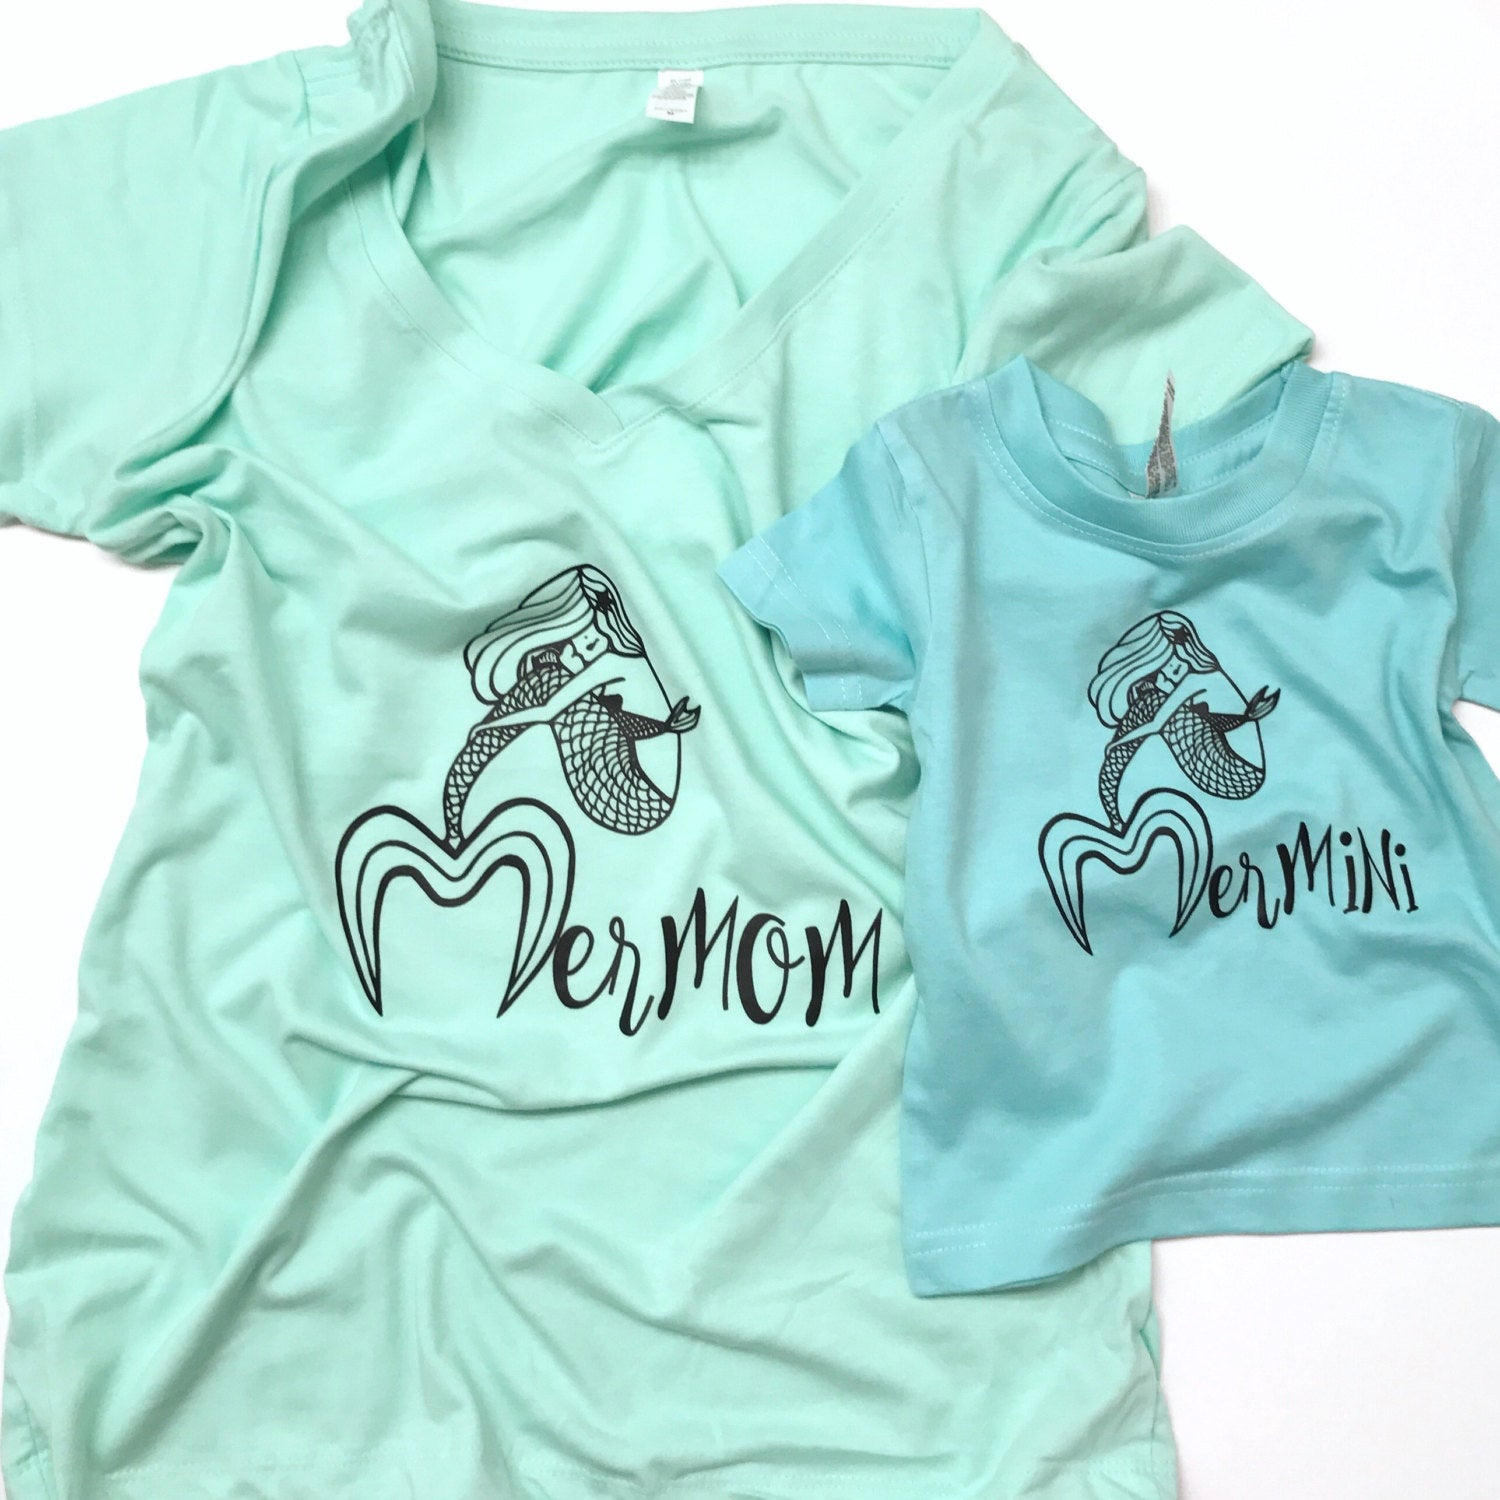 Mermaid matching mommy and me shirt SET